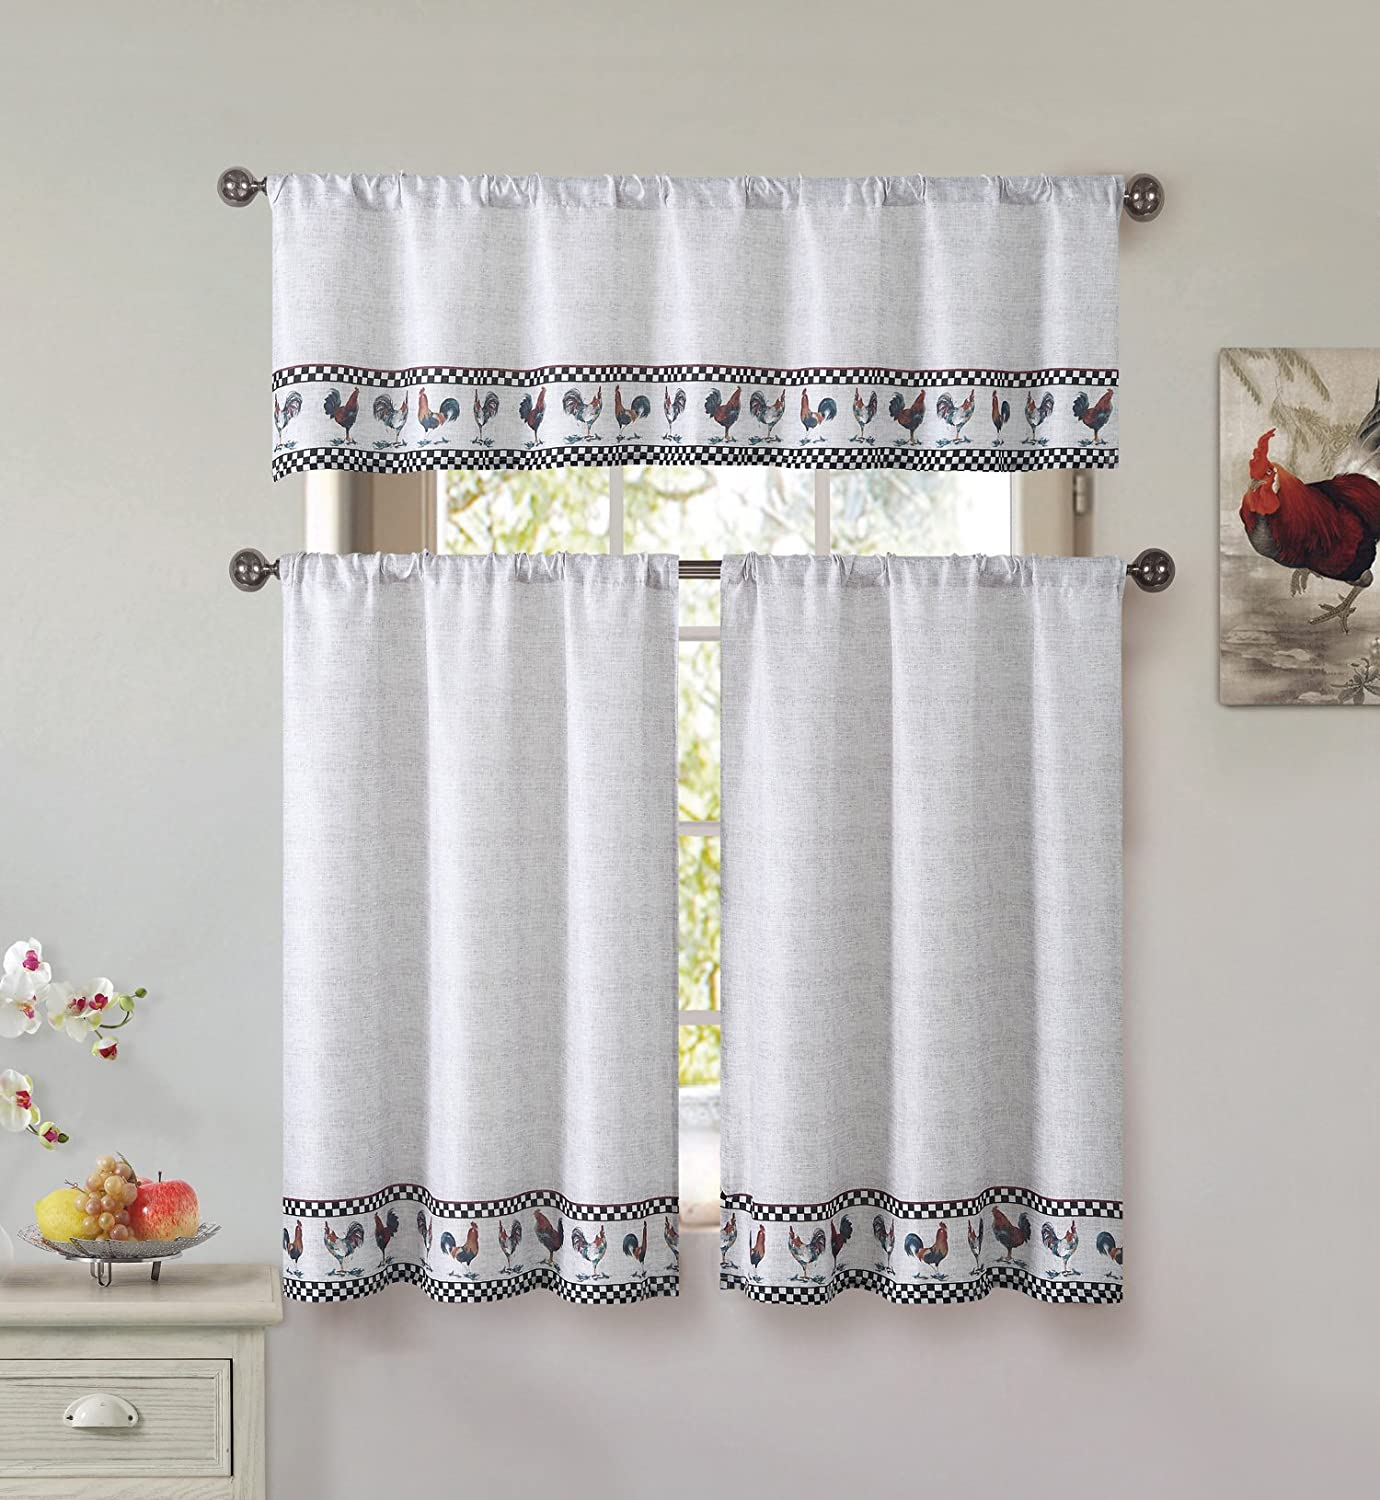 Cotton Blend 3 Piece Kitchen/Cafe Tier Window Curtain Set: Rooster and Check Design